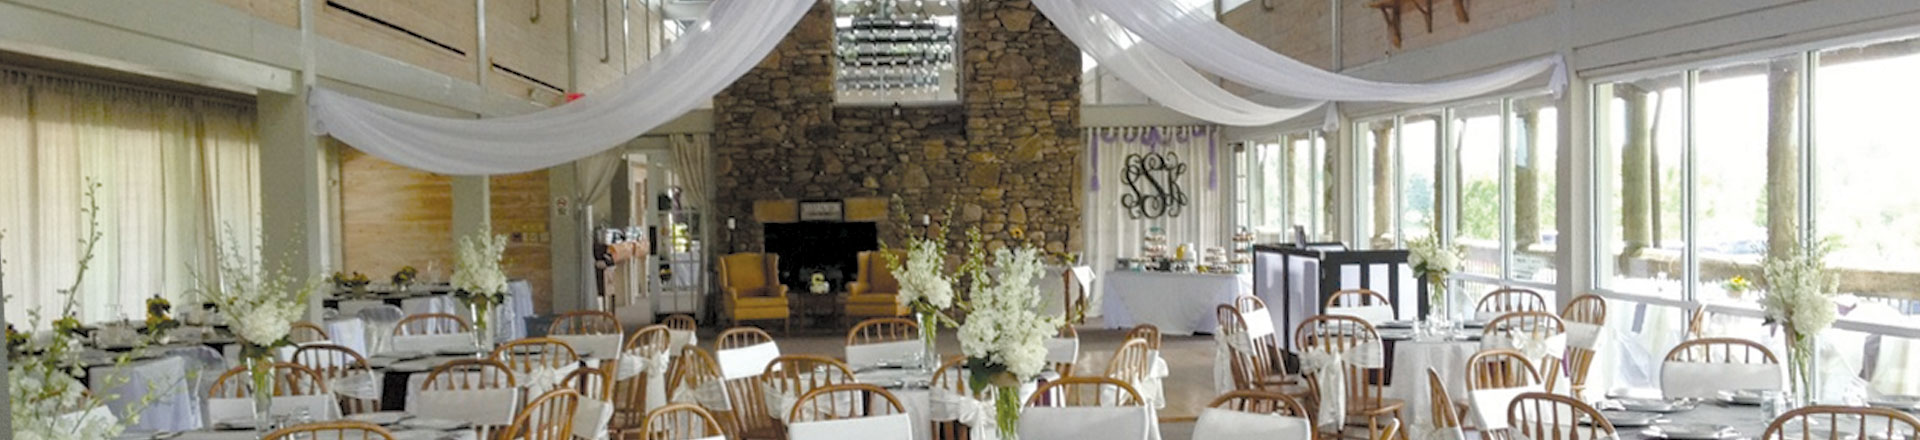 R-Ranch | Lovely Event Venue Inside and Out